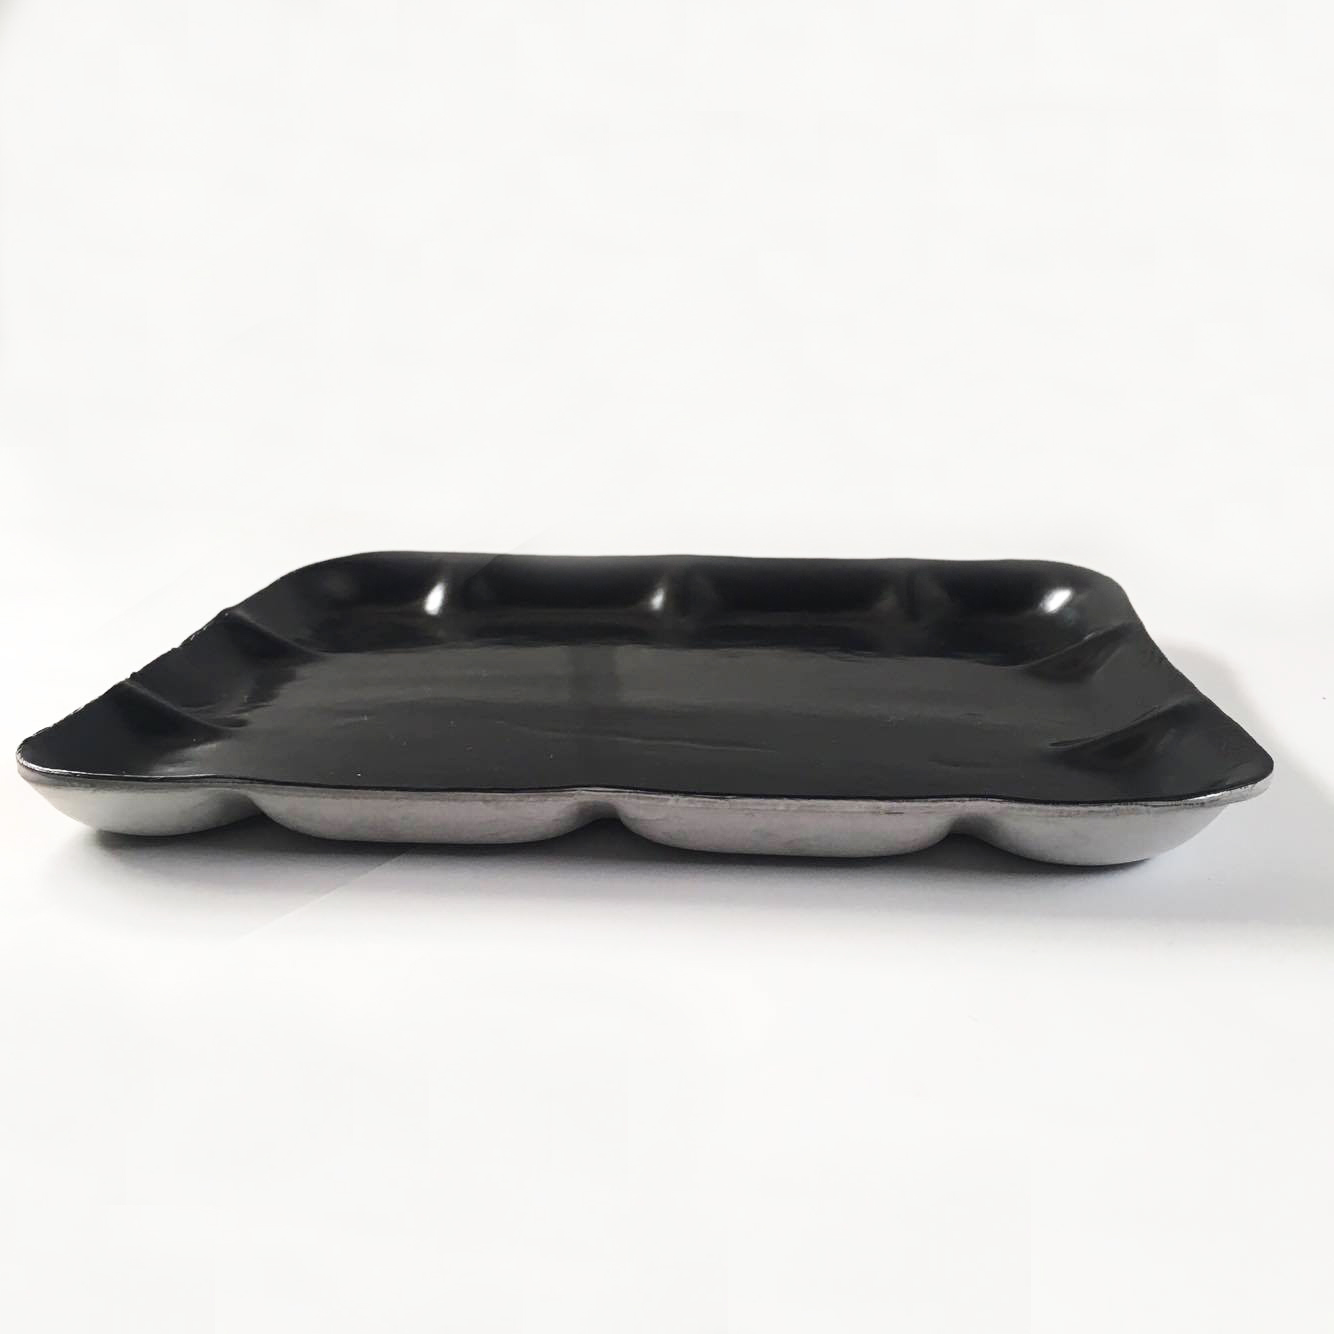 "Foam Tray Black Shallow 8"" x 7"""